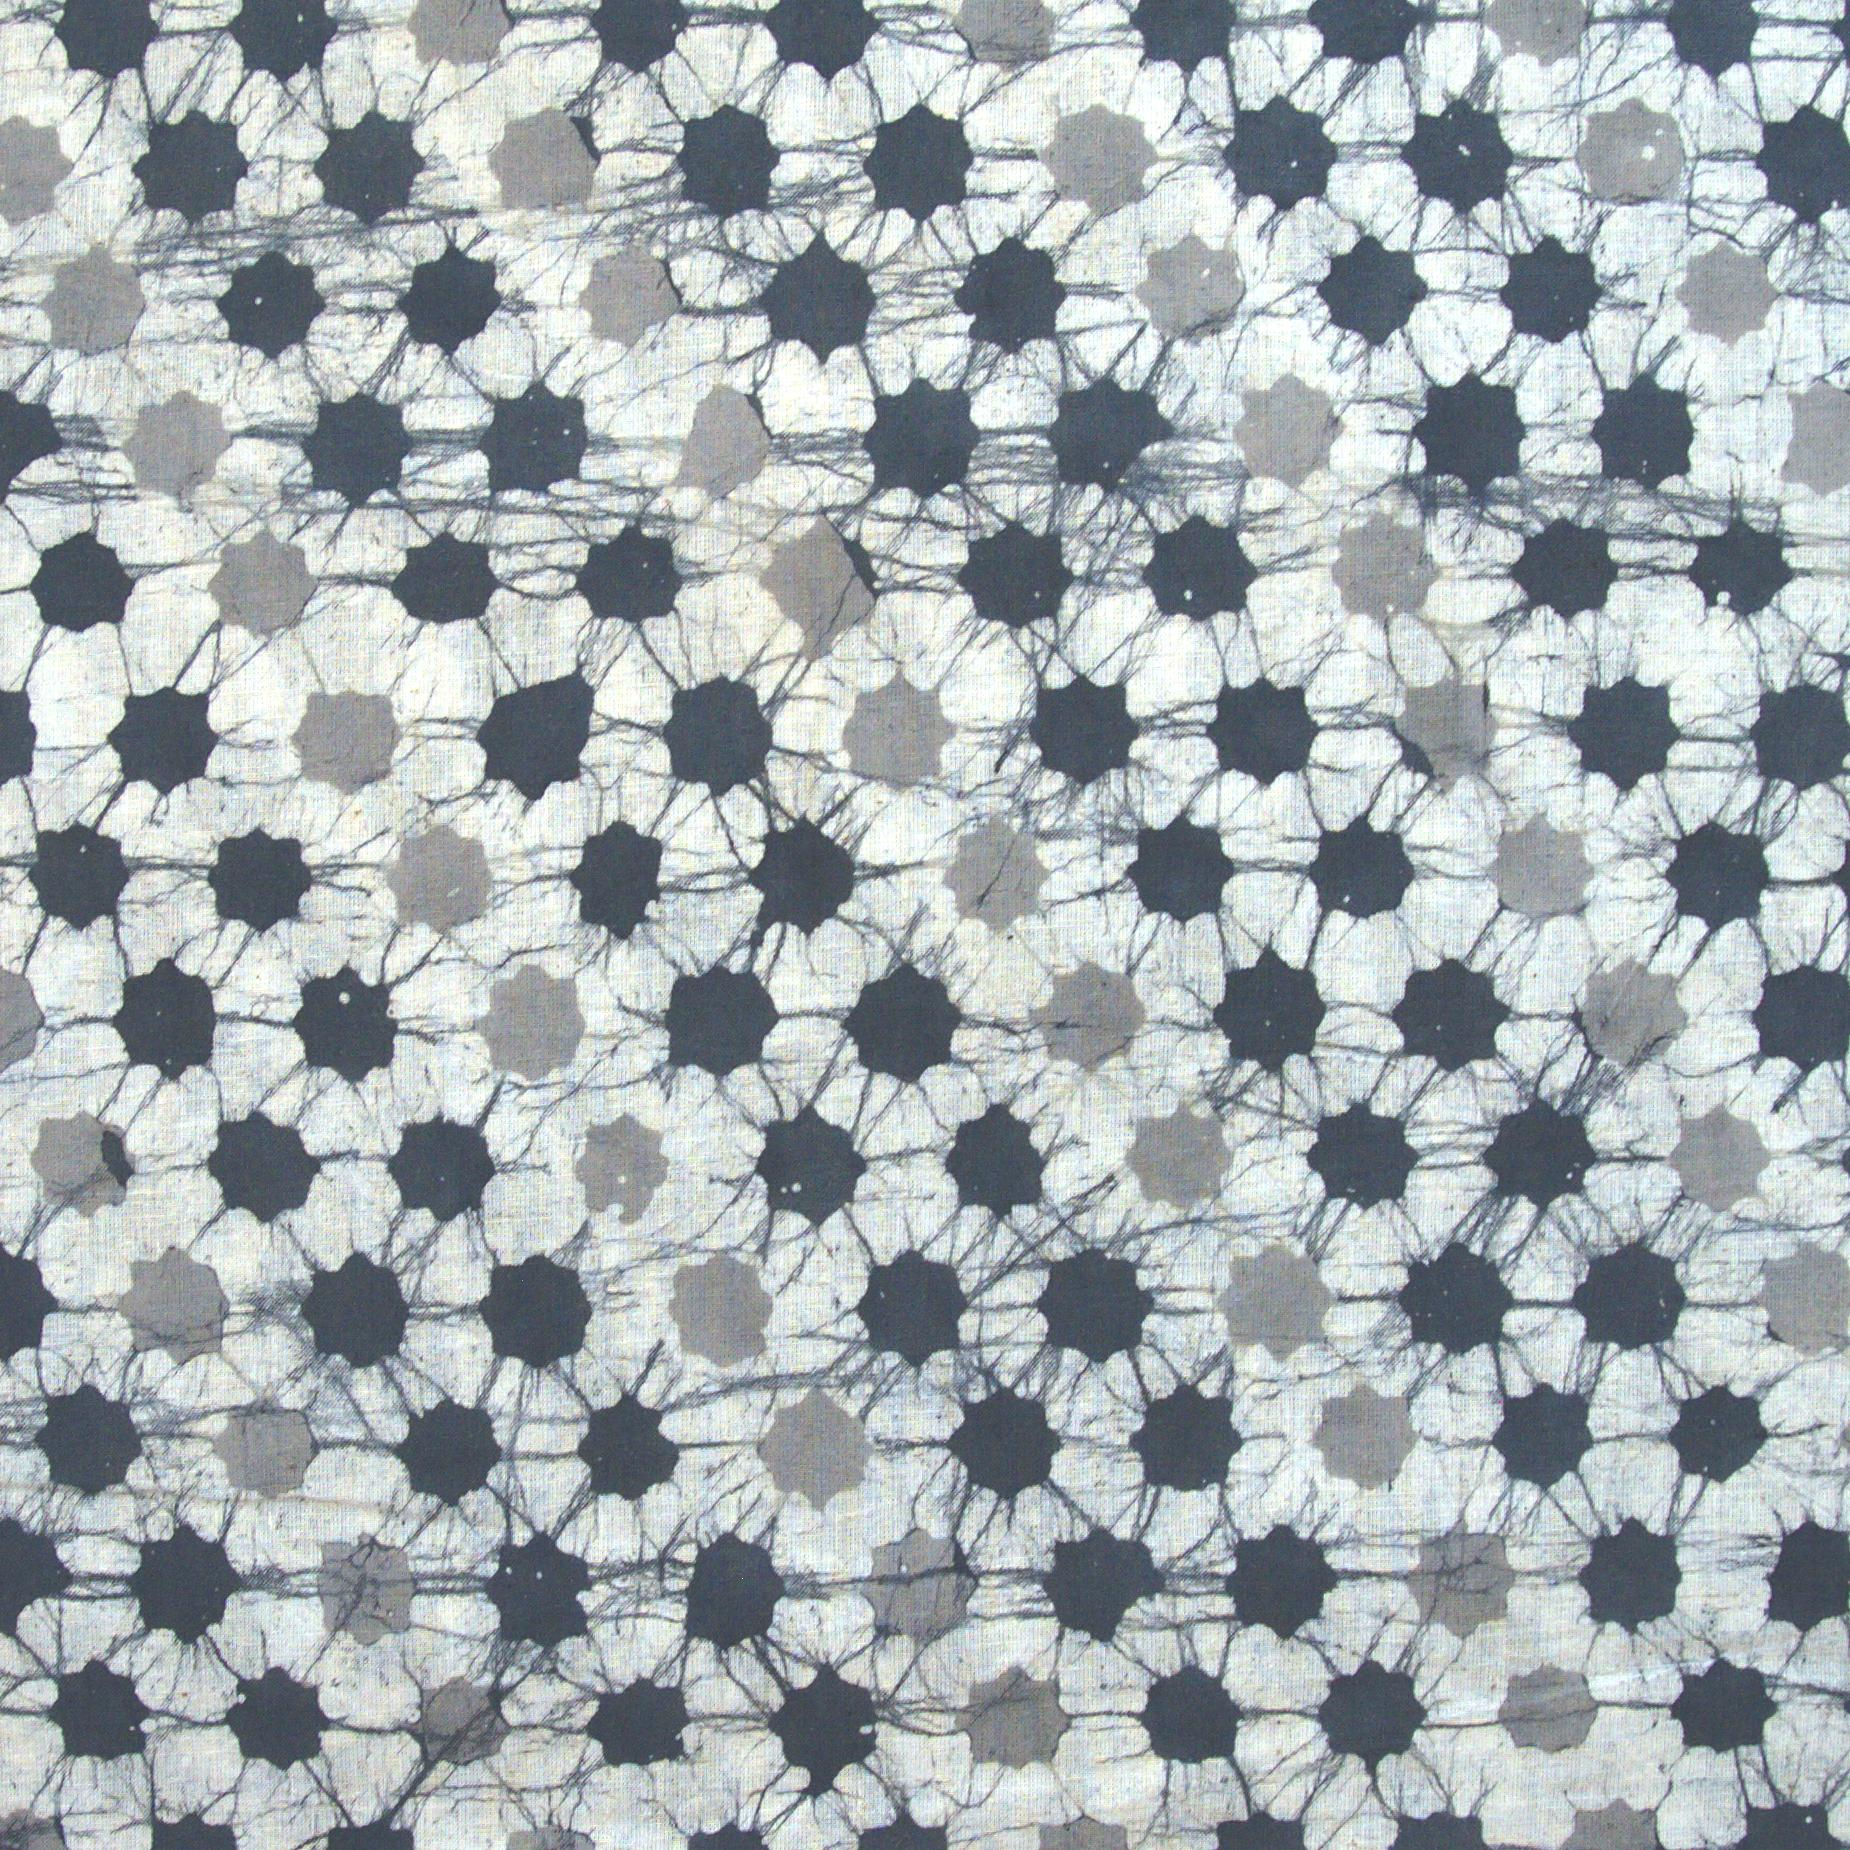 2 - SHA05 - 100% Block-Printed Batik Cotton Fabric From India - Batik - Grey Stars